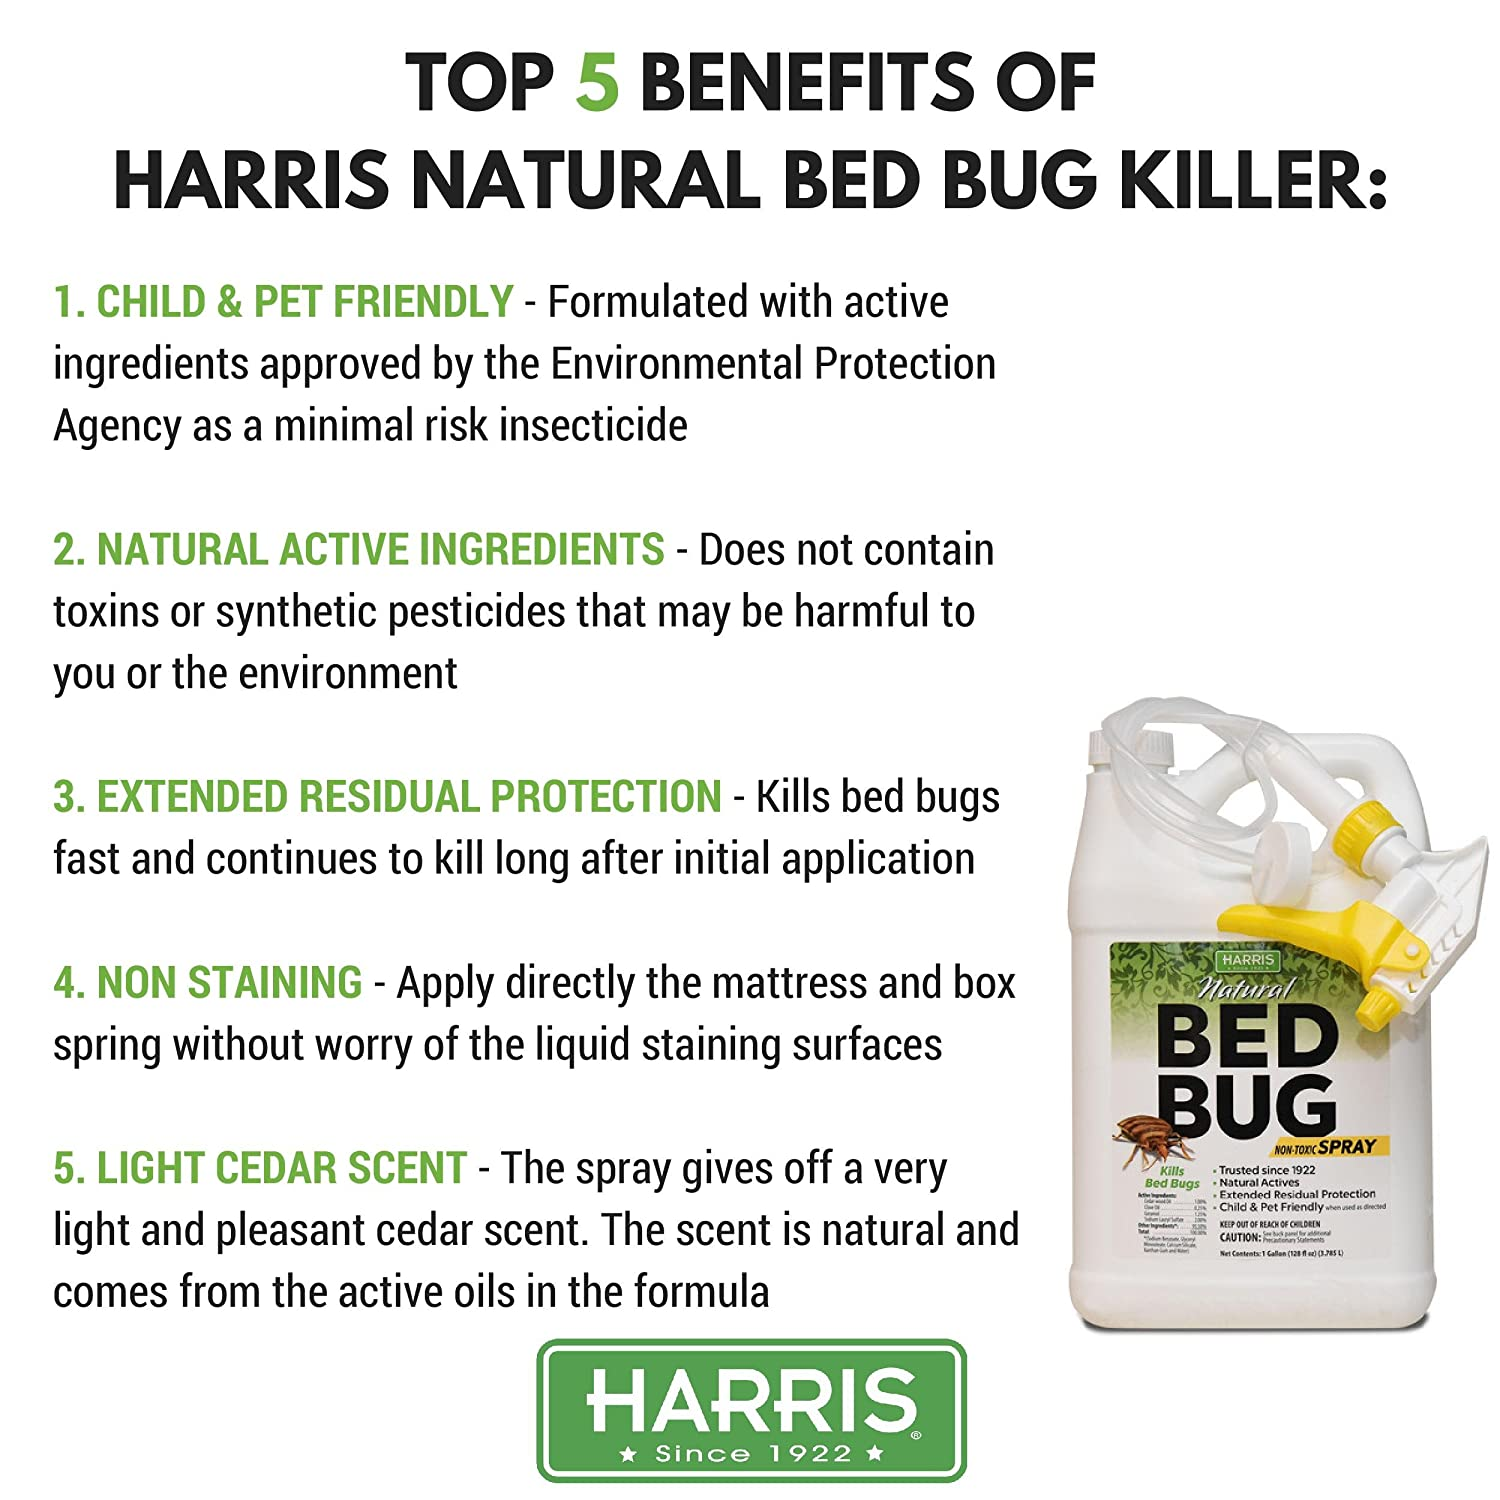 Harris Plant Based Bed Bug Killer, Fast Acting Non-Toxic Spray with  Extended Residual (Gallon)